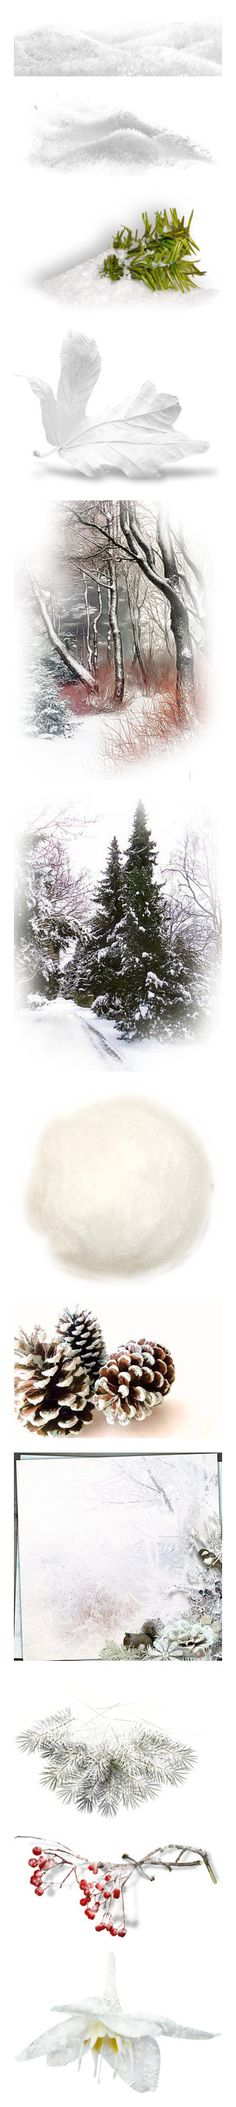 """""""Winter!"""" by jewelsinthecrown ❤ liked on Polyvore featuring winter, snow, backgrounds, christmas, fillers, effects, embellishment, detail, picture frame and borders"""